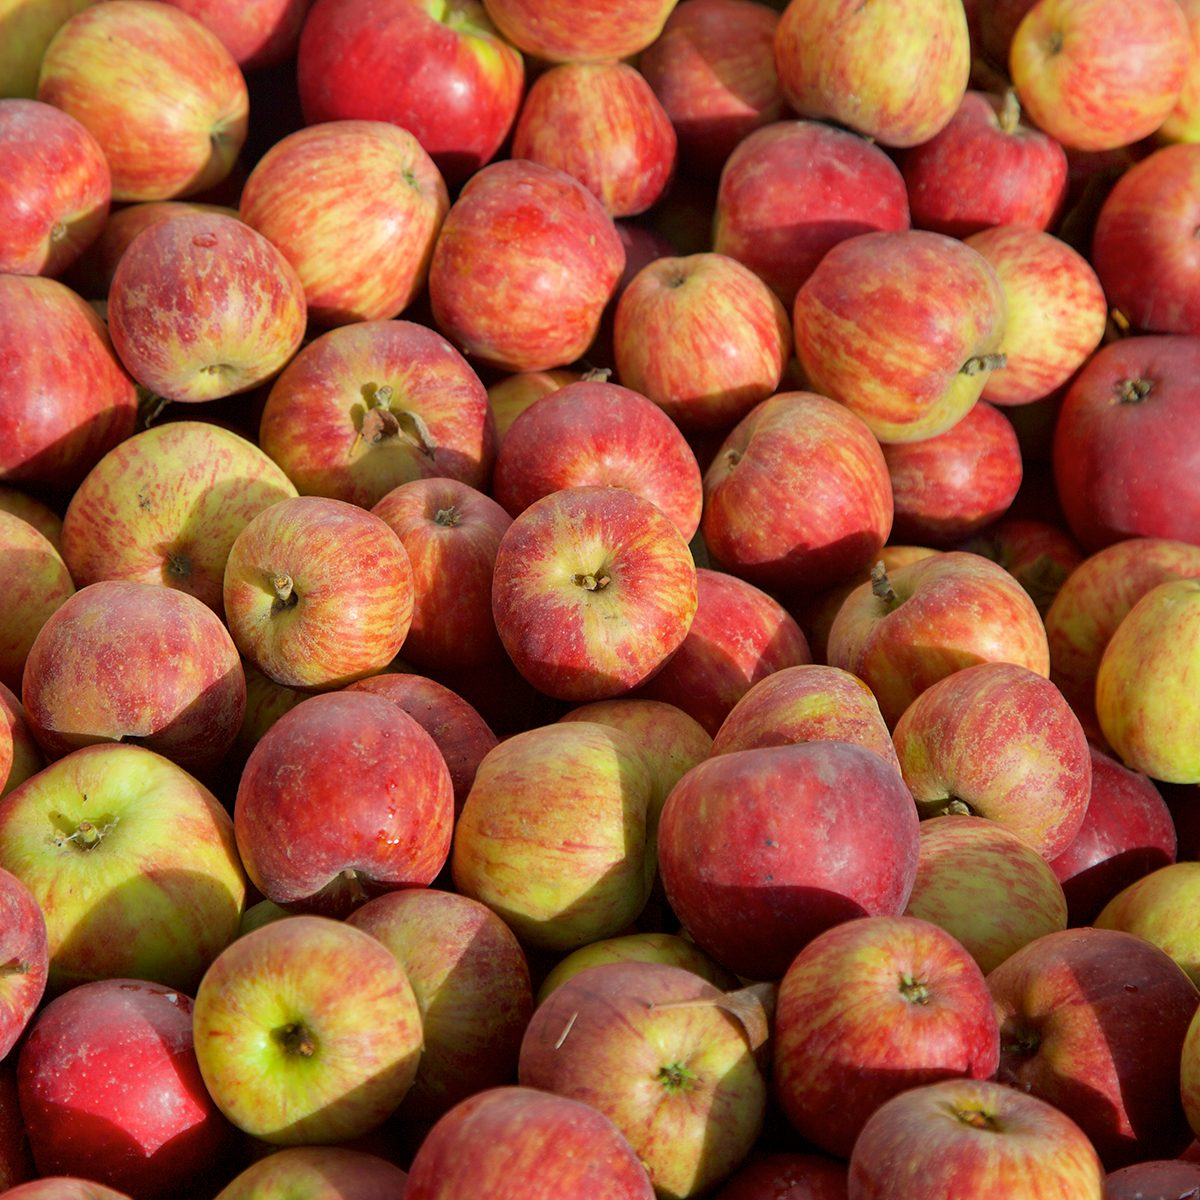 red winesap apples background at apple harvest